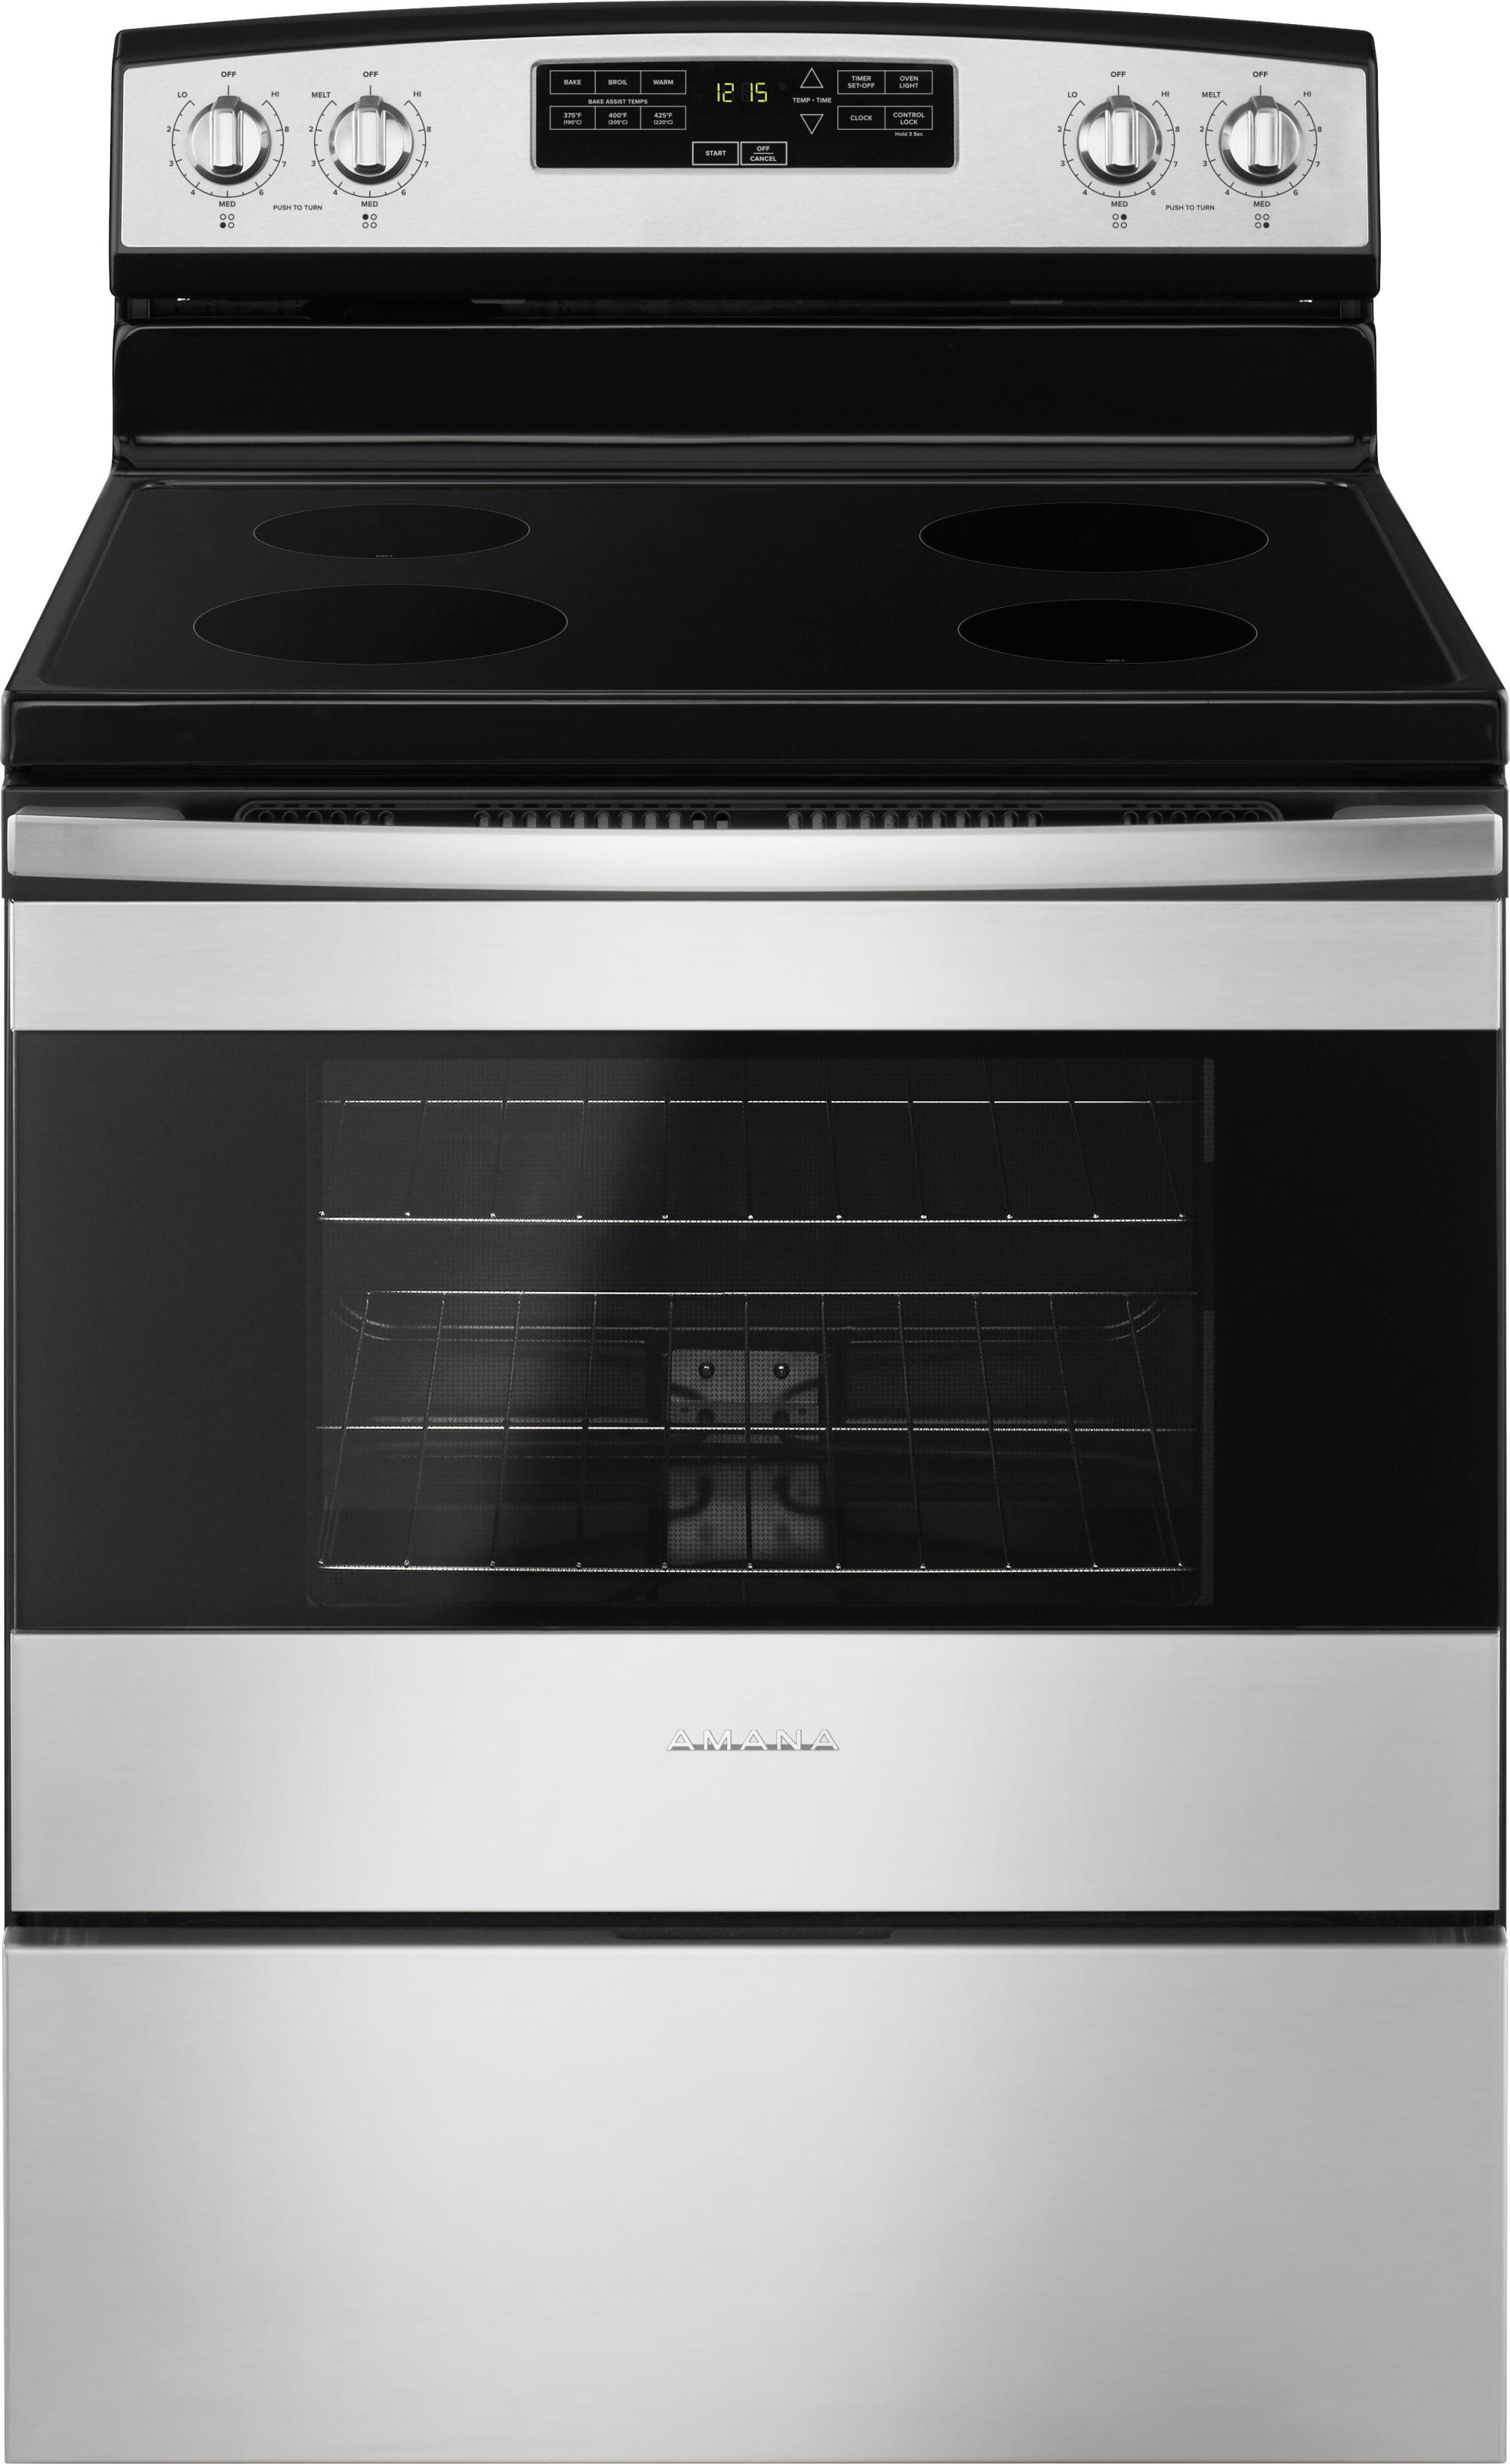 hight resolution of ft freestanding electric range stainless steel aer6303mfs best buy